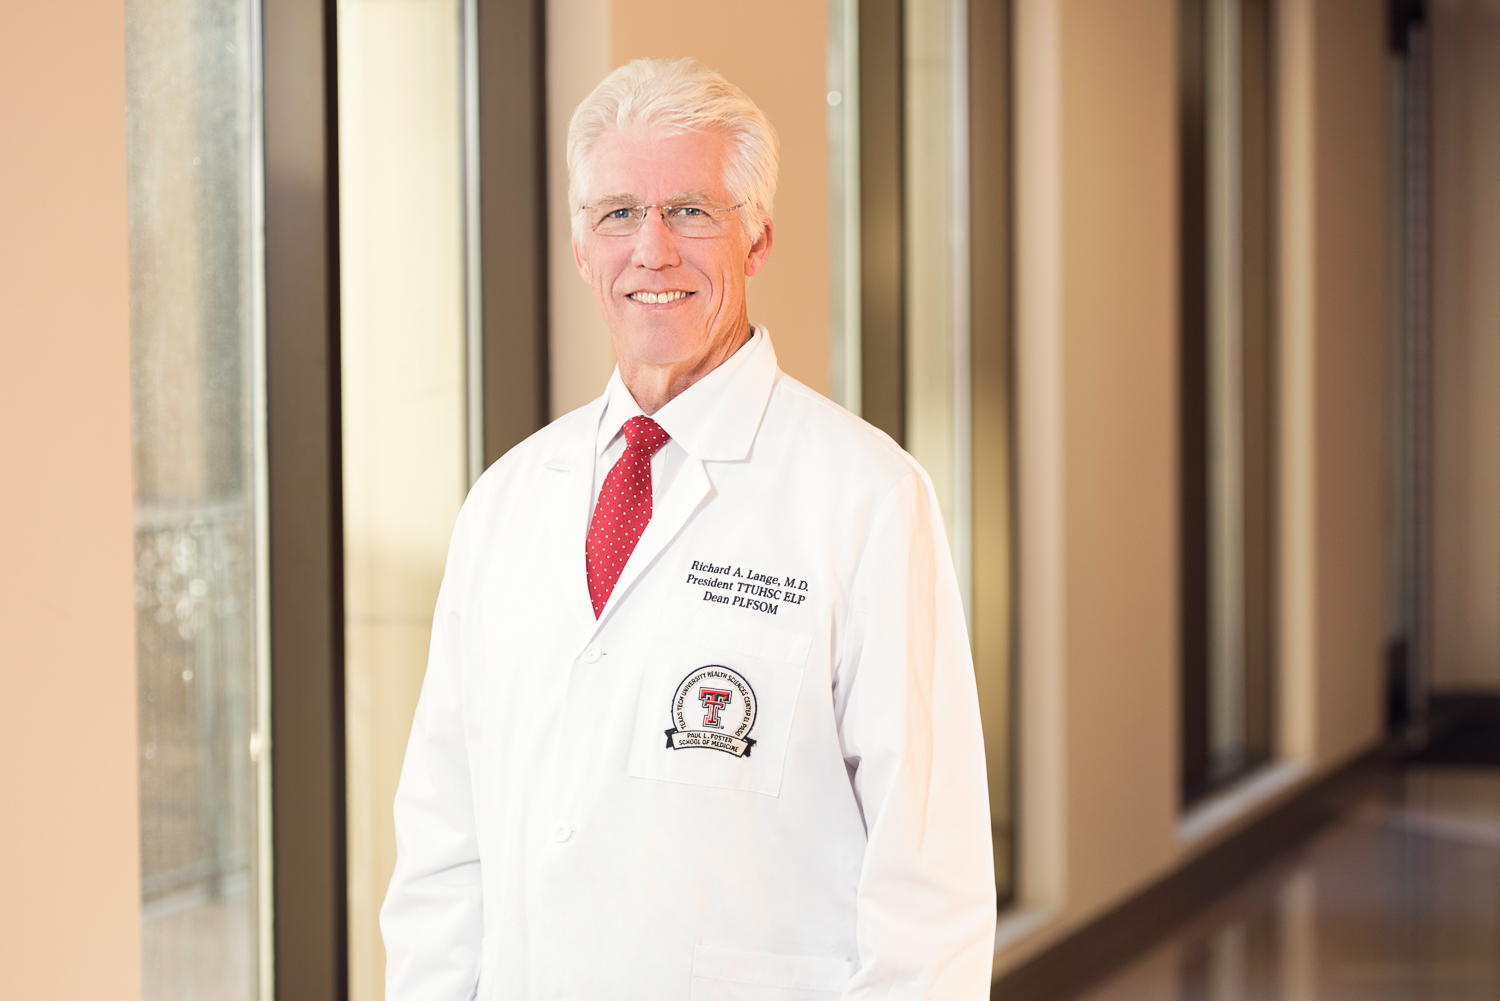 Texas Tech University Health Sciences Center El Paso President Richard Lange, M.D., M.B.A., has been appointed as panel chair for the U.S. Food and Drug Administration Circulatory Systems Devices Panel.